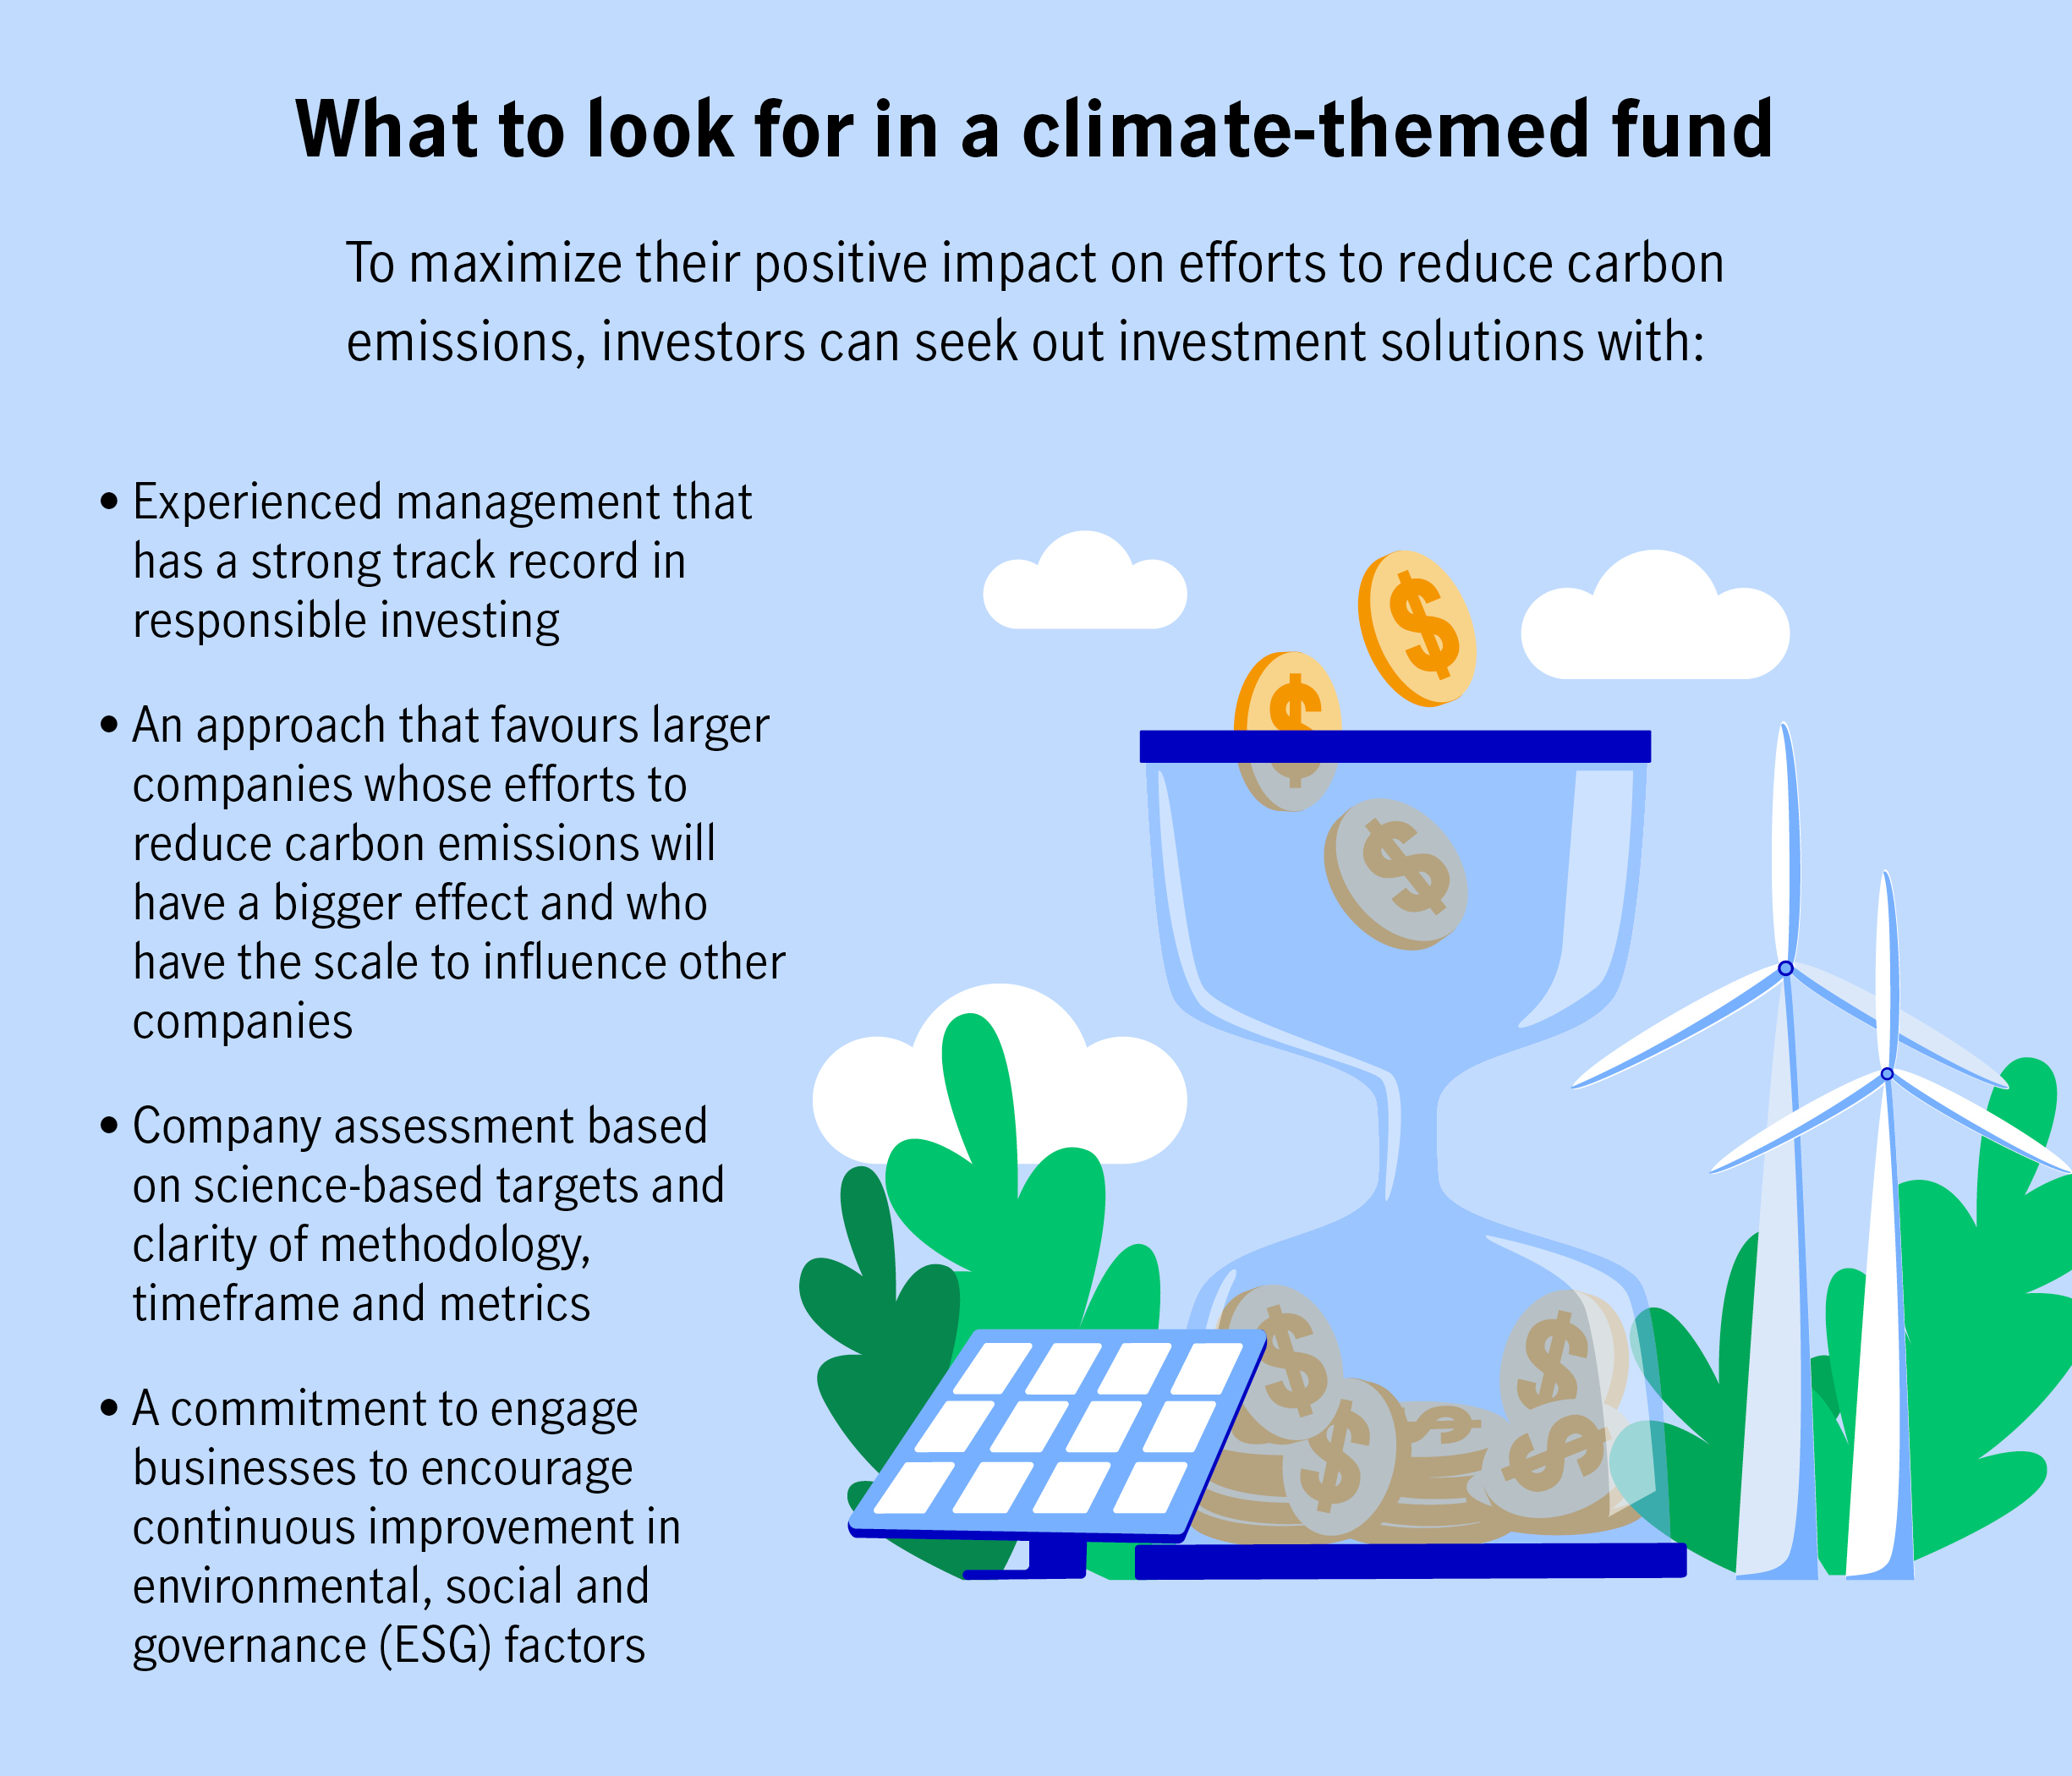 What to look for in a climate-themed fund  To maximize their positive impact on efforts to reduce carbon emissions, investors can seek out investment solutions with:  Experienced management that has a strong track record in responsible investing. An approach that favours larger companies whose efforts to reduce carbon emissions will have a bigger effect and who have the scale to influence other companies. Company assessment based on science-based targets and clarity of methodology, timeframe and metrics.  A commitment to engage businesses to encourage continuous improvement in environmental, social and governance (ESG) factors.